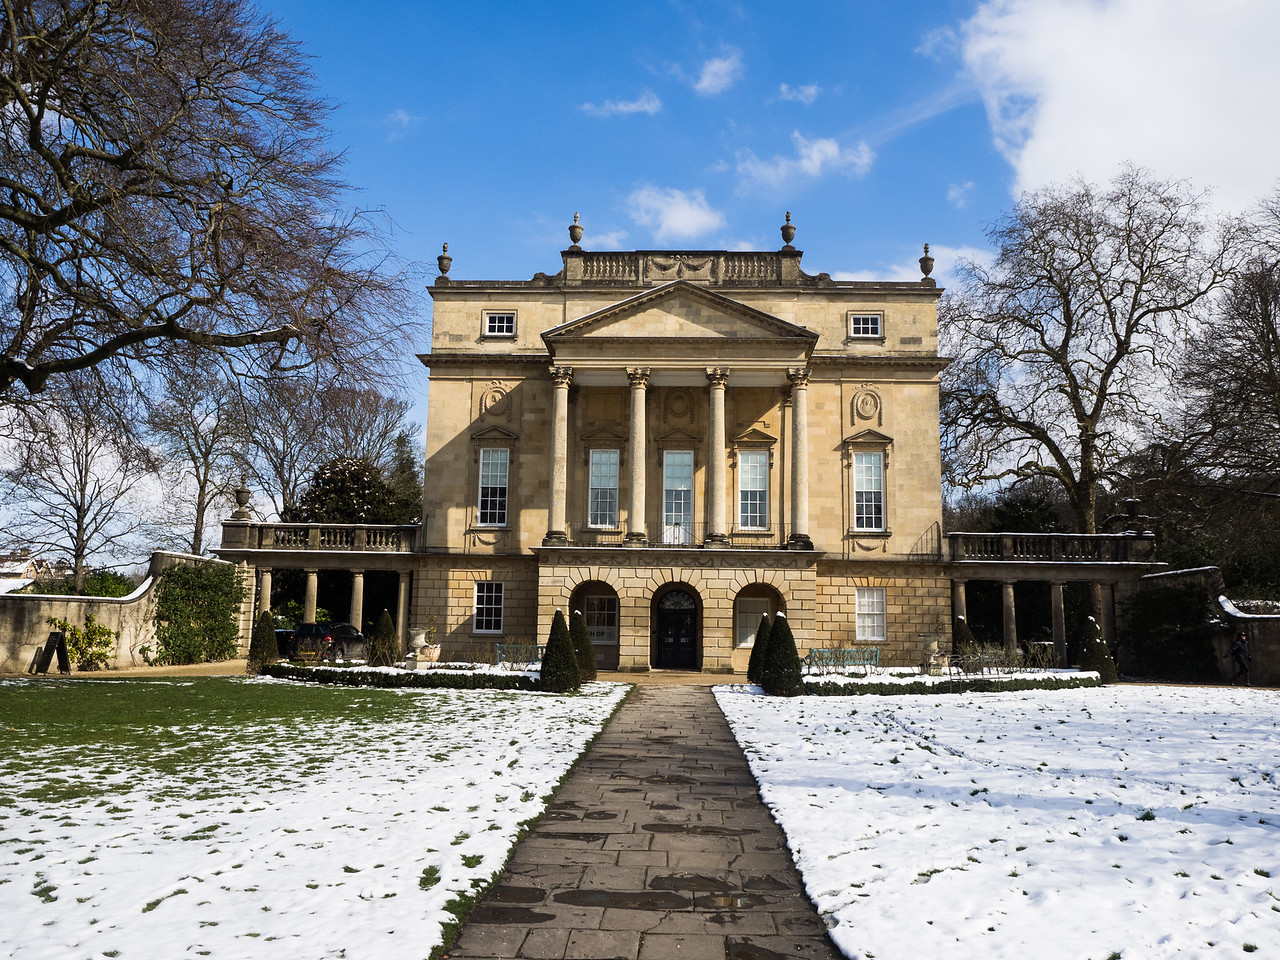 The Holburne museum, in Sydney Gardens.